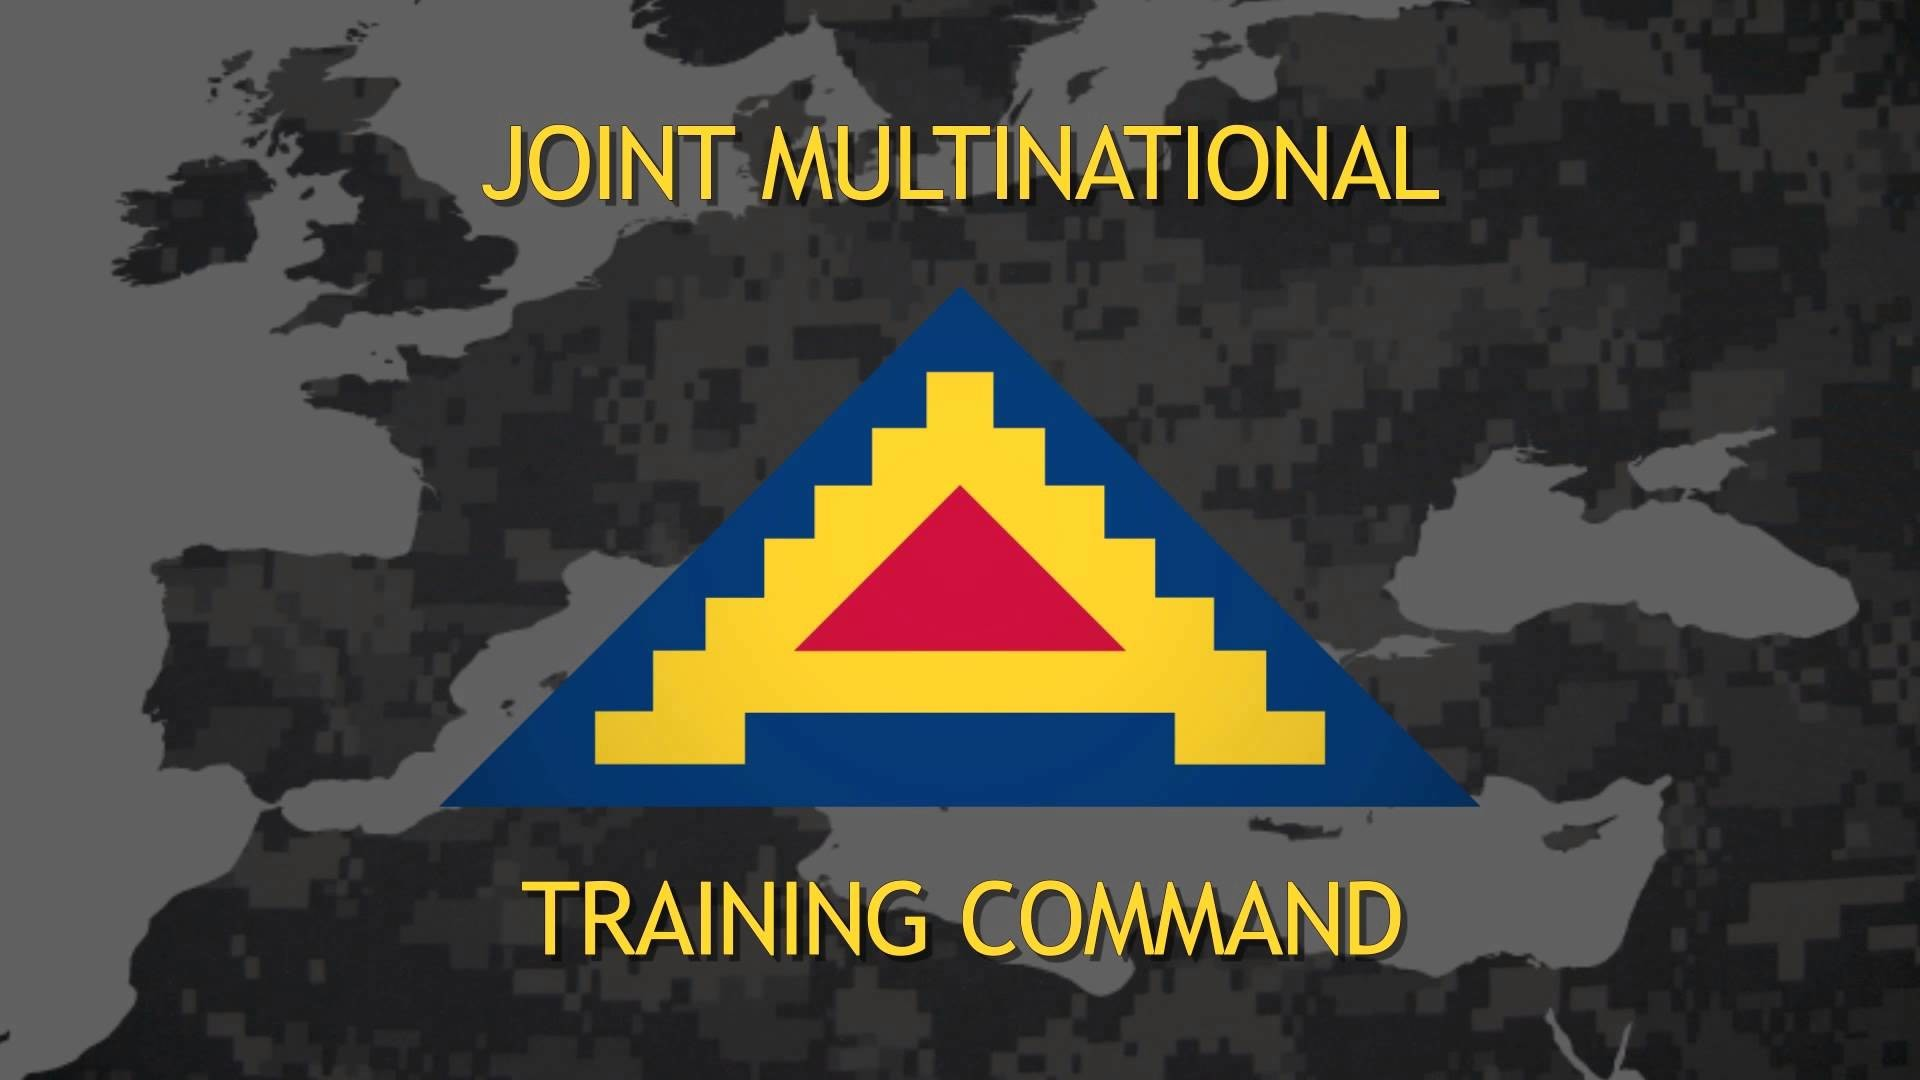 Res: 1920x1080, 7th Army JMTC